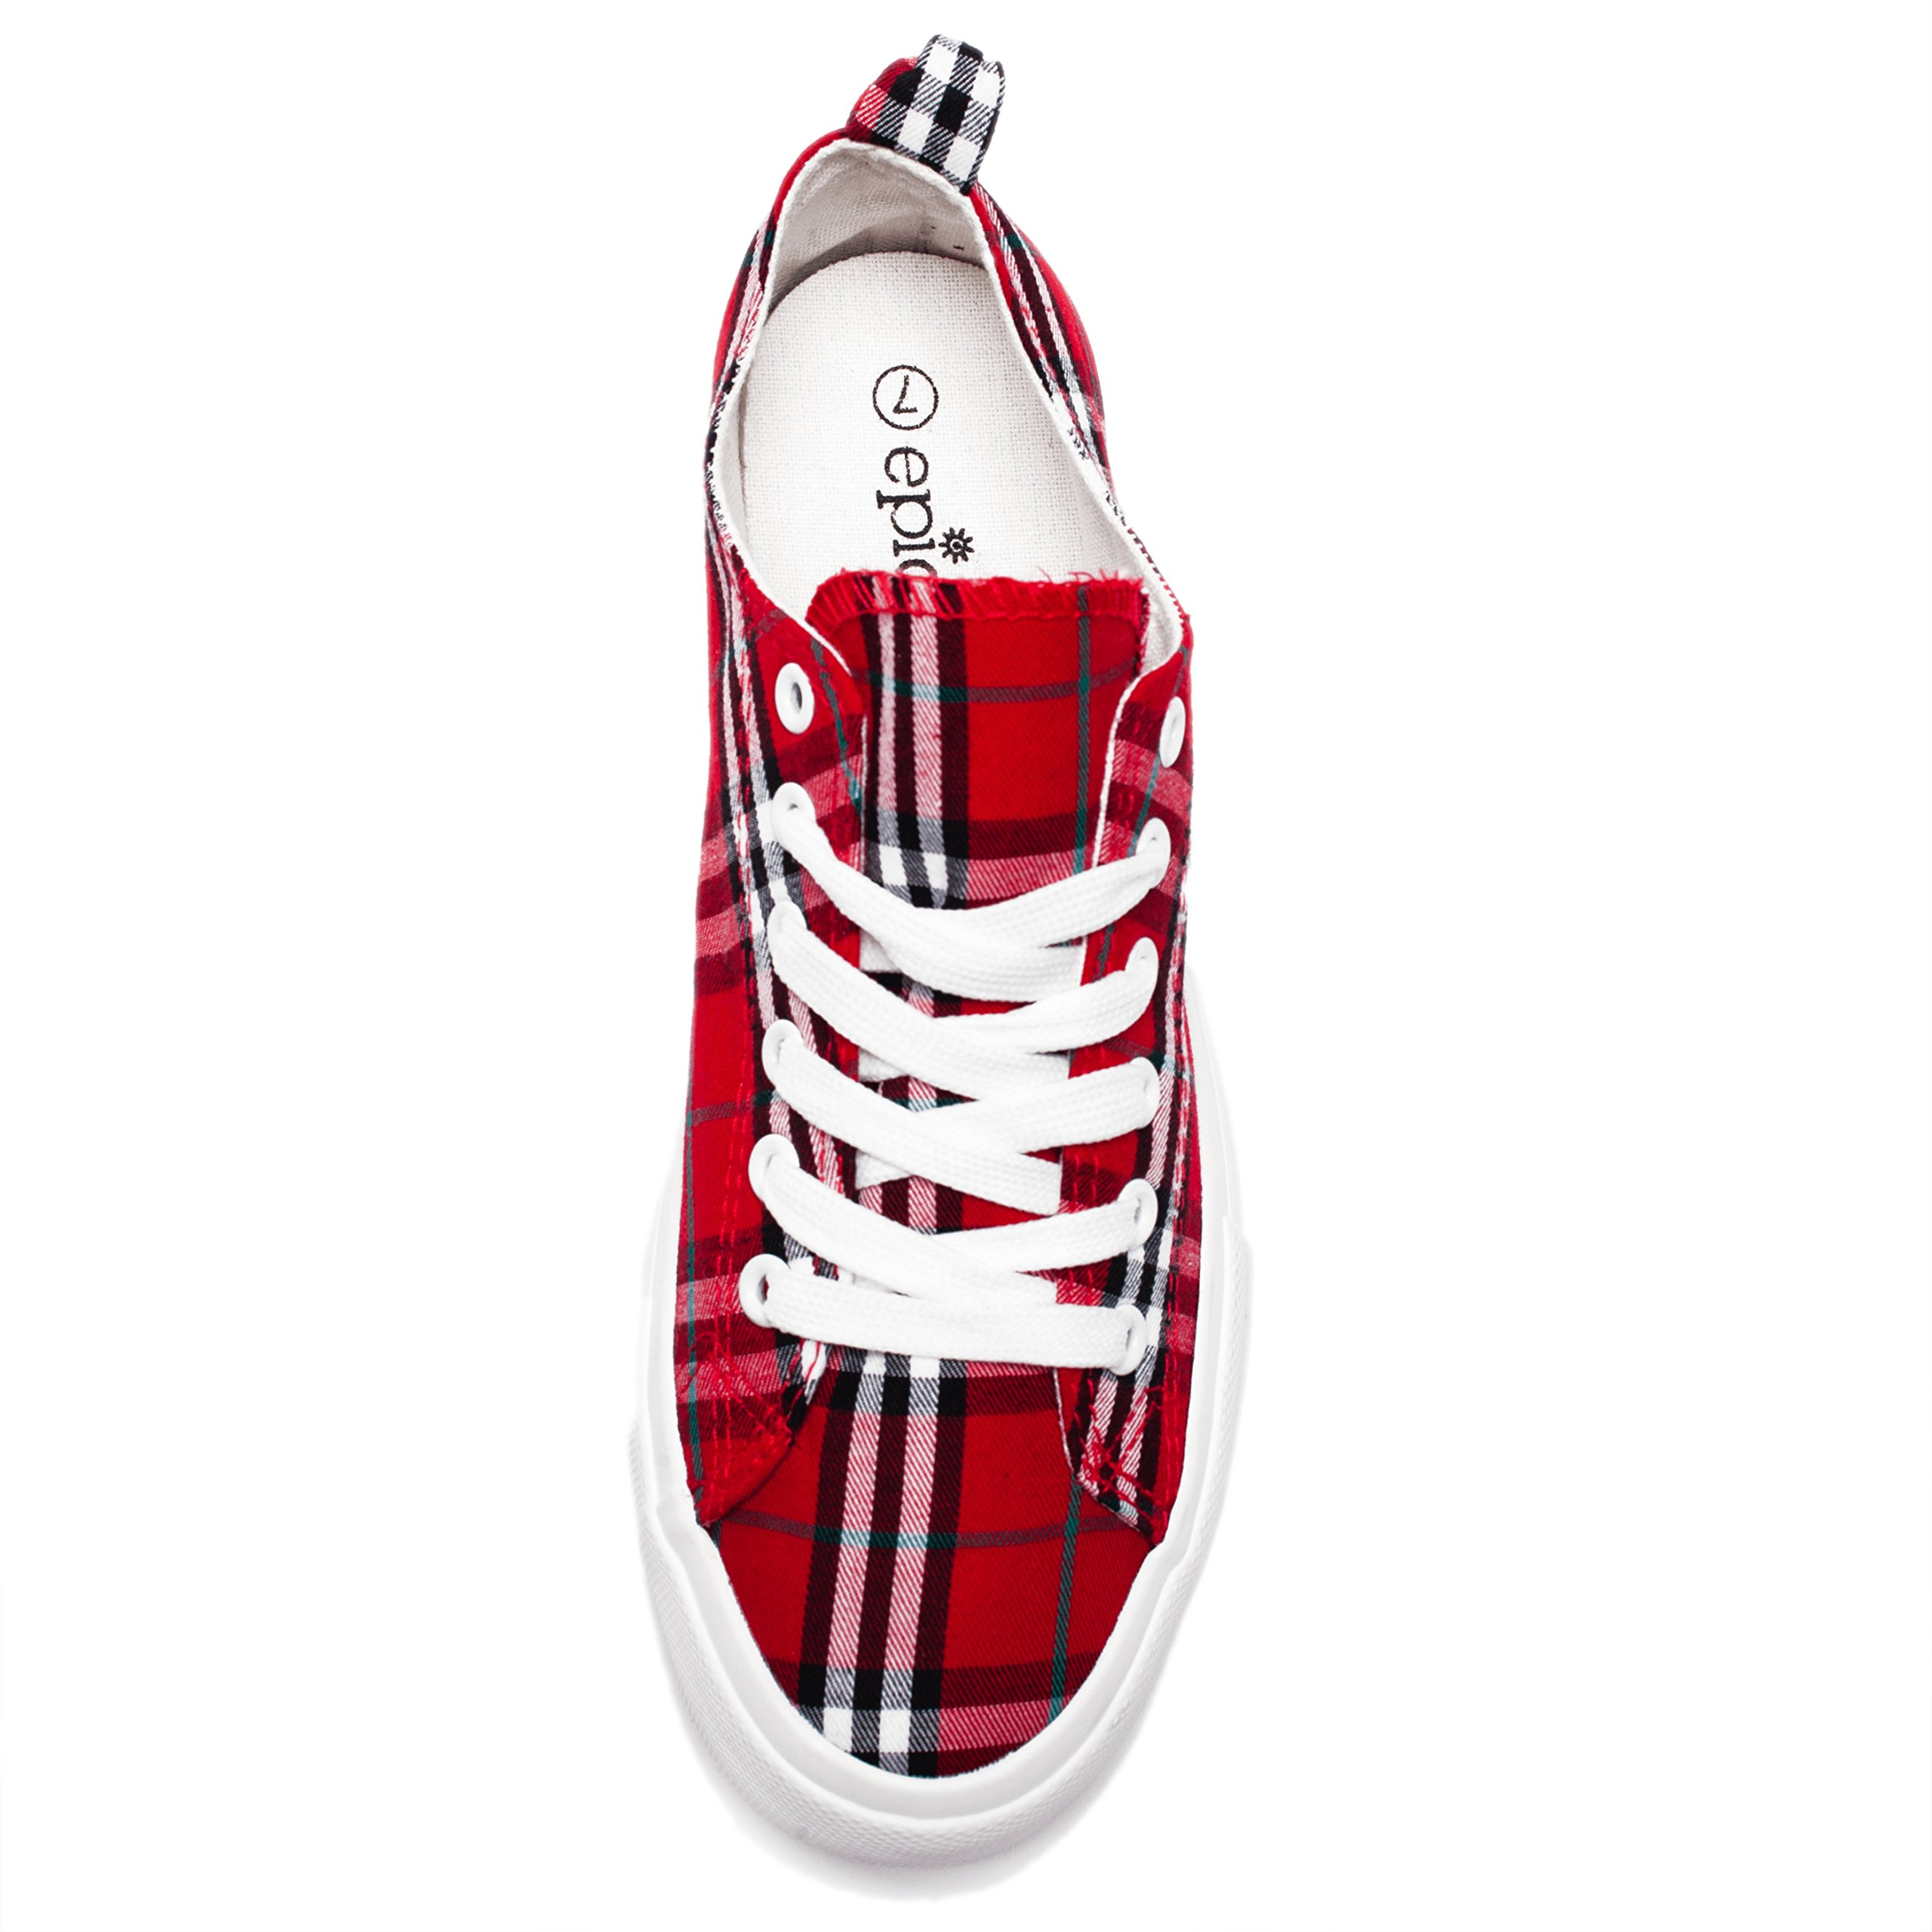 Fashion Vegan Leather Monochromatic Lace Up Colored Sneakers, Low Top Round Toe Shoes, Stylish and Comfortable (8, Red and Black Plaid) by Shelf Angel (Image #4)